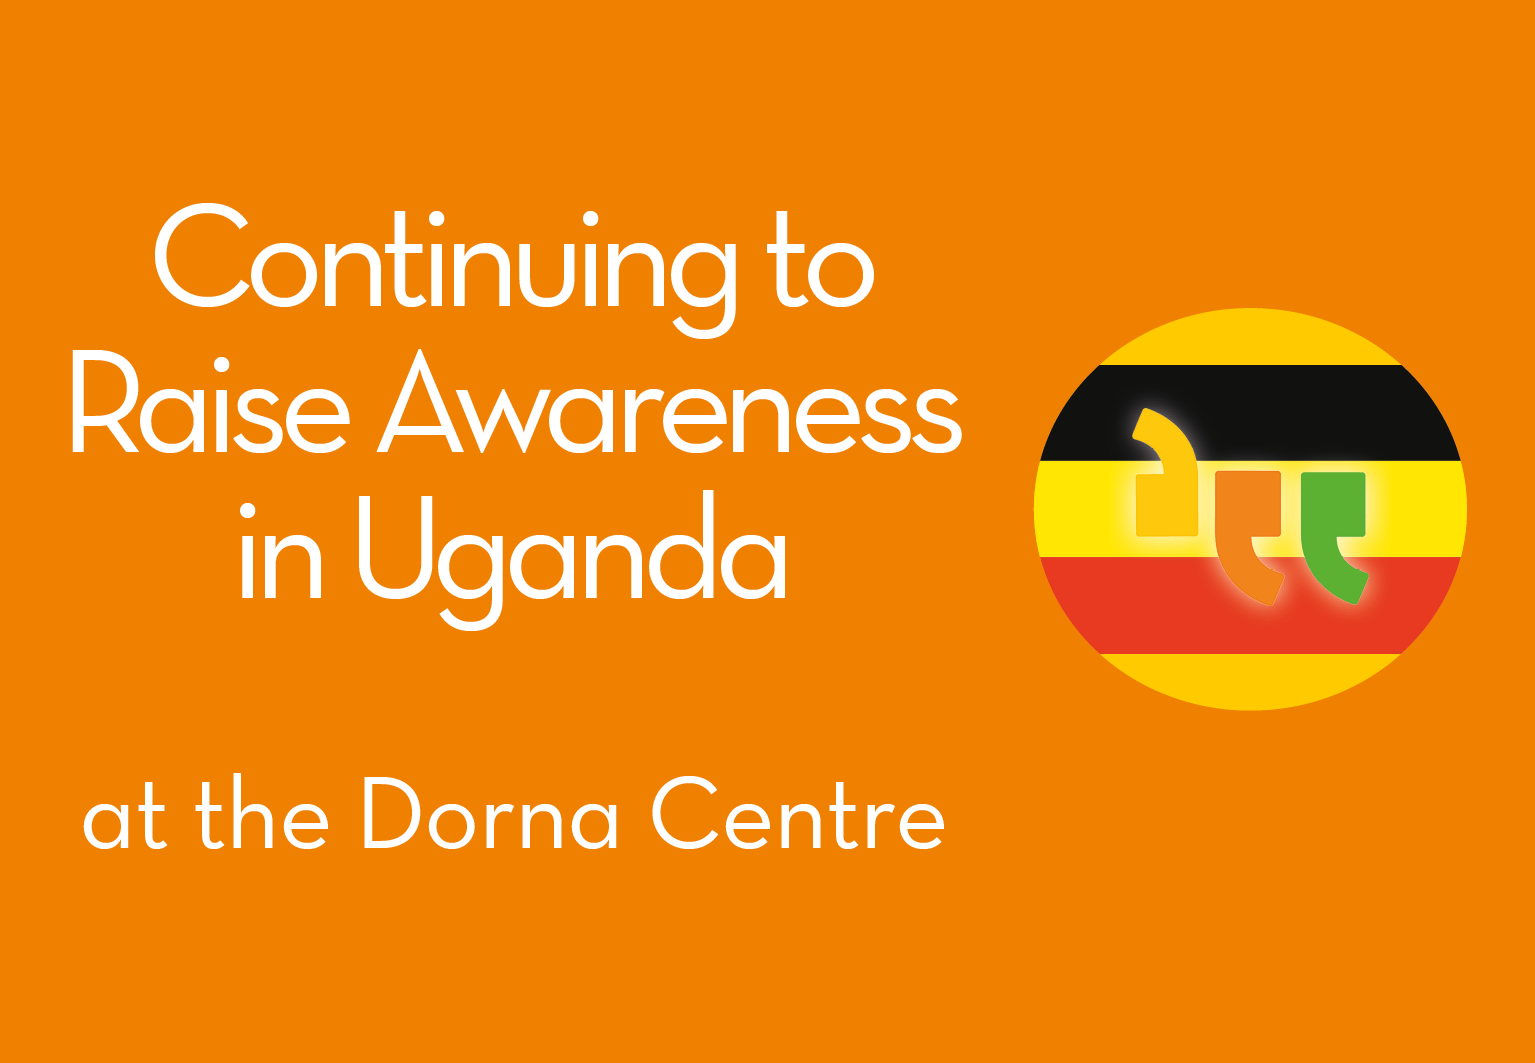 app2vox Continues to Raise Autism Awareness and Provide Support in Uganda